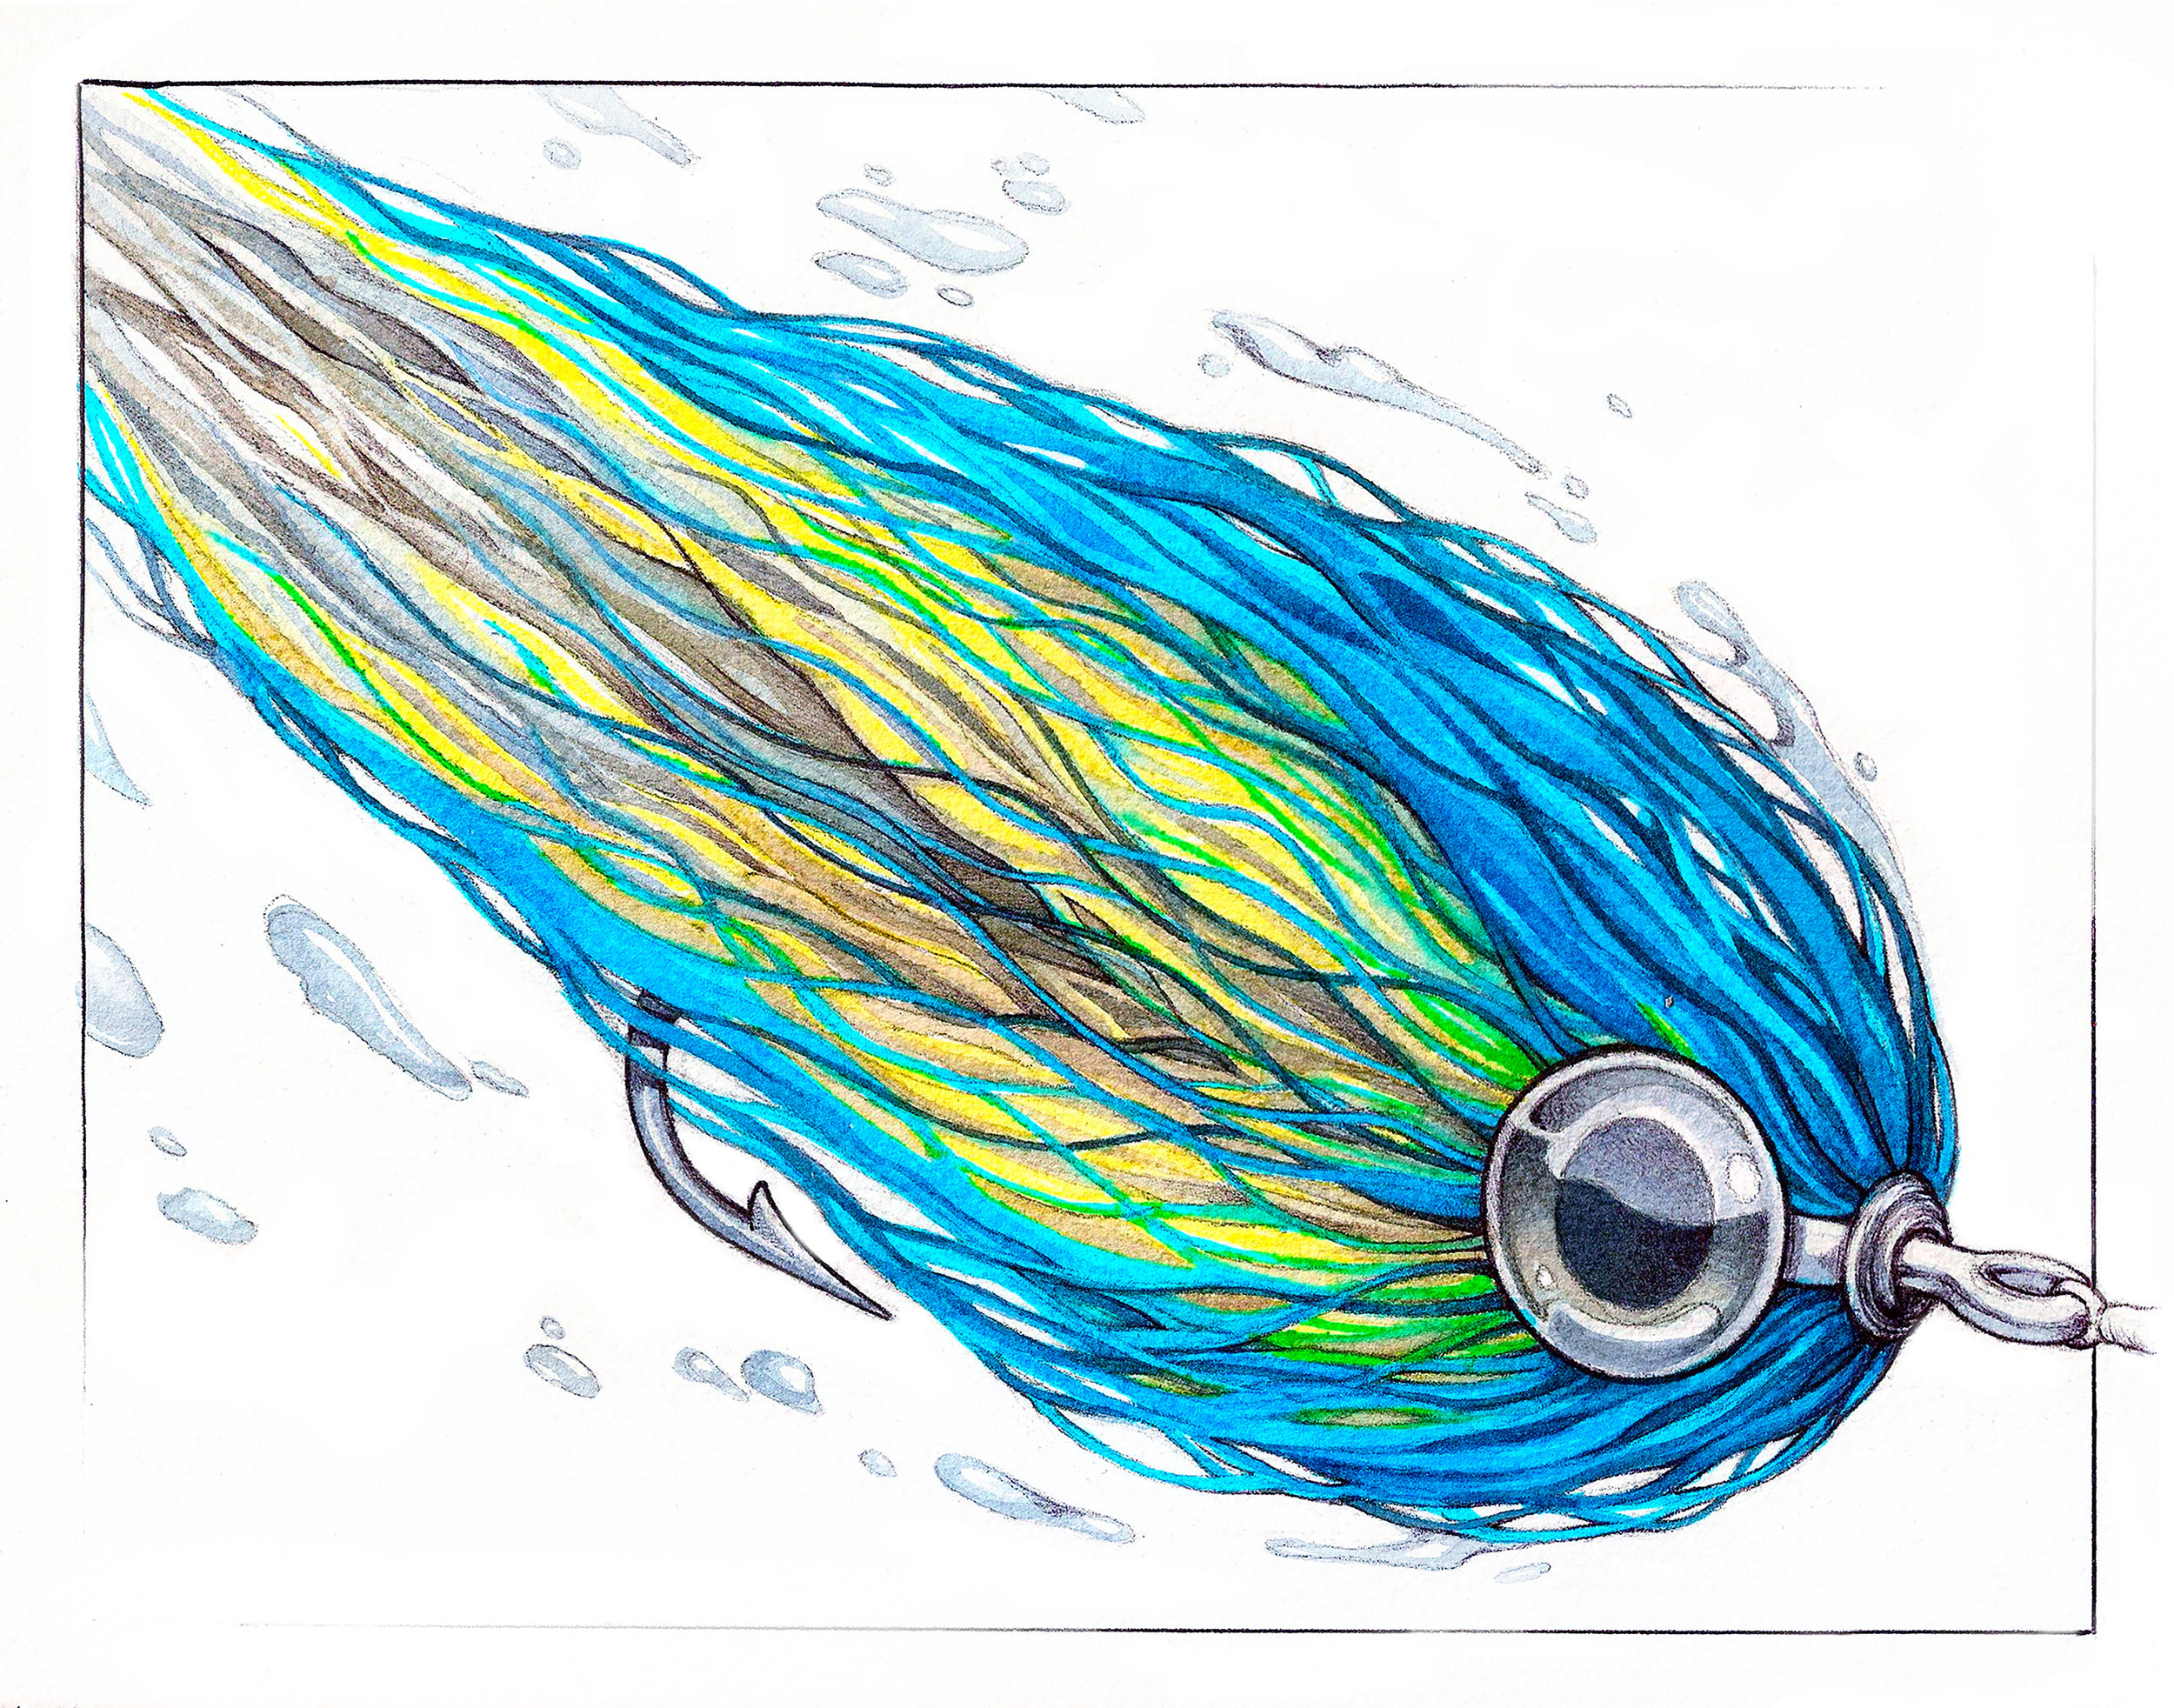 Bulkhead Streamer  tied by Ben Whally | Marker, Watercolor, and Pen